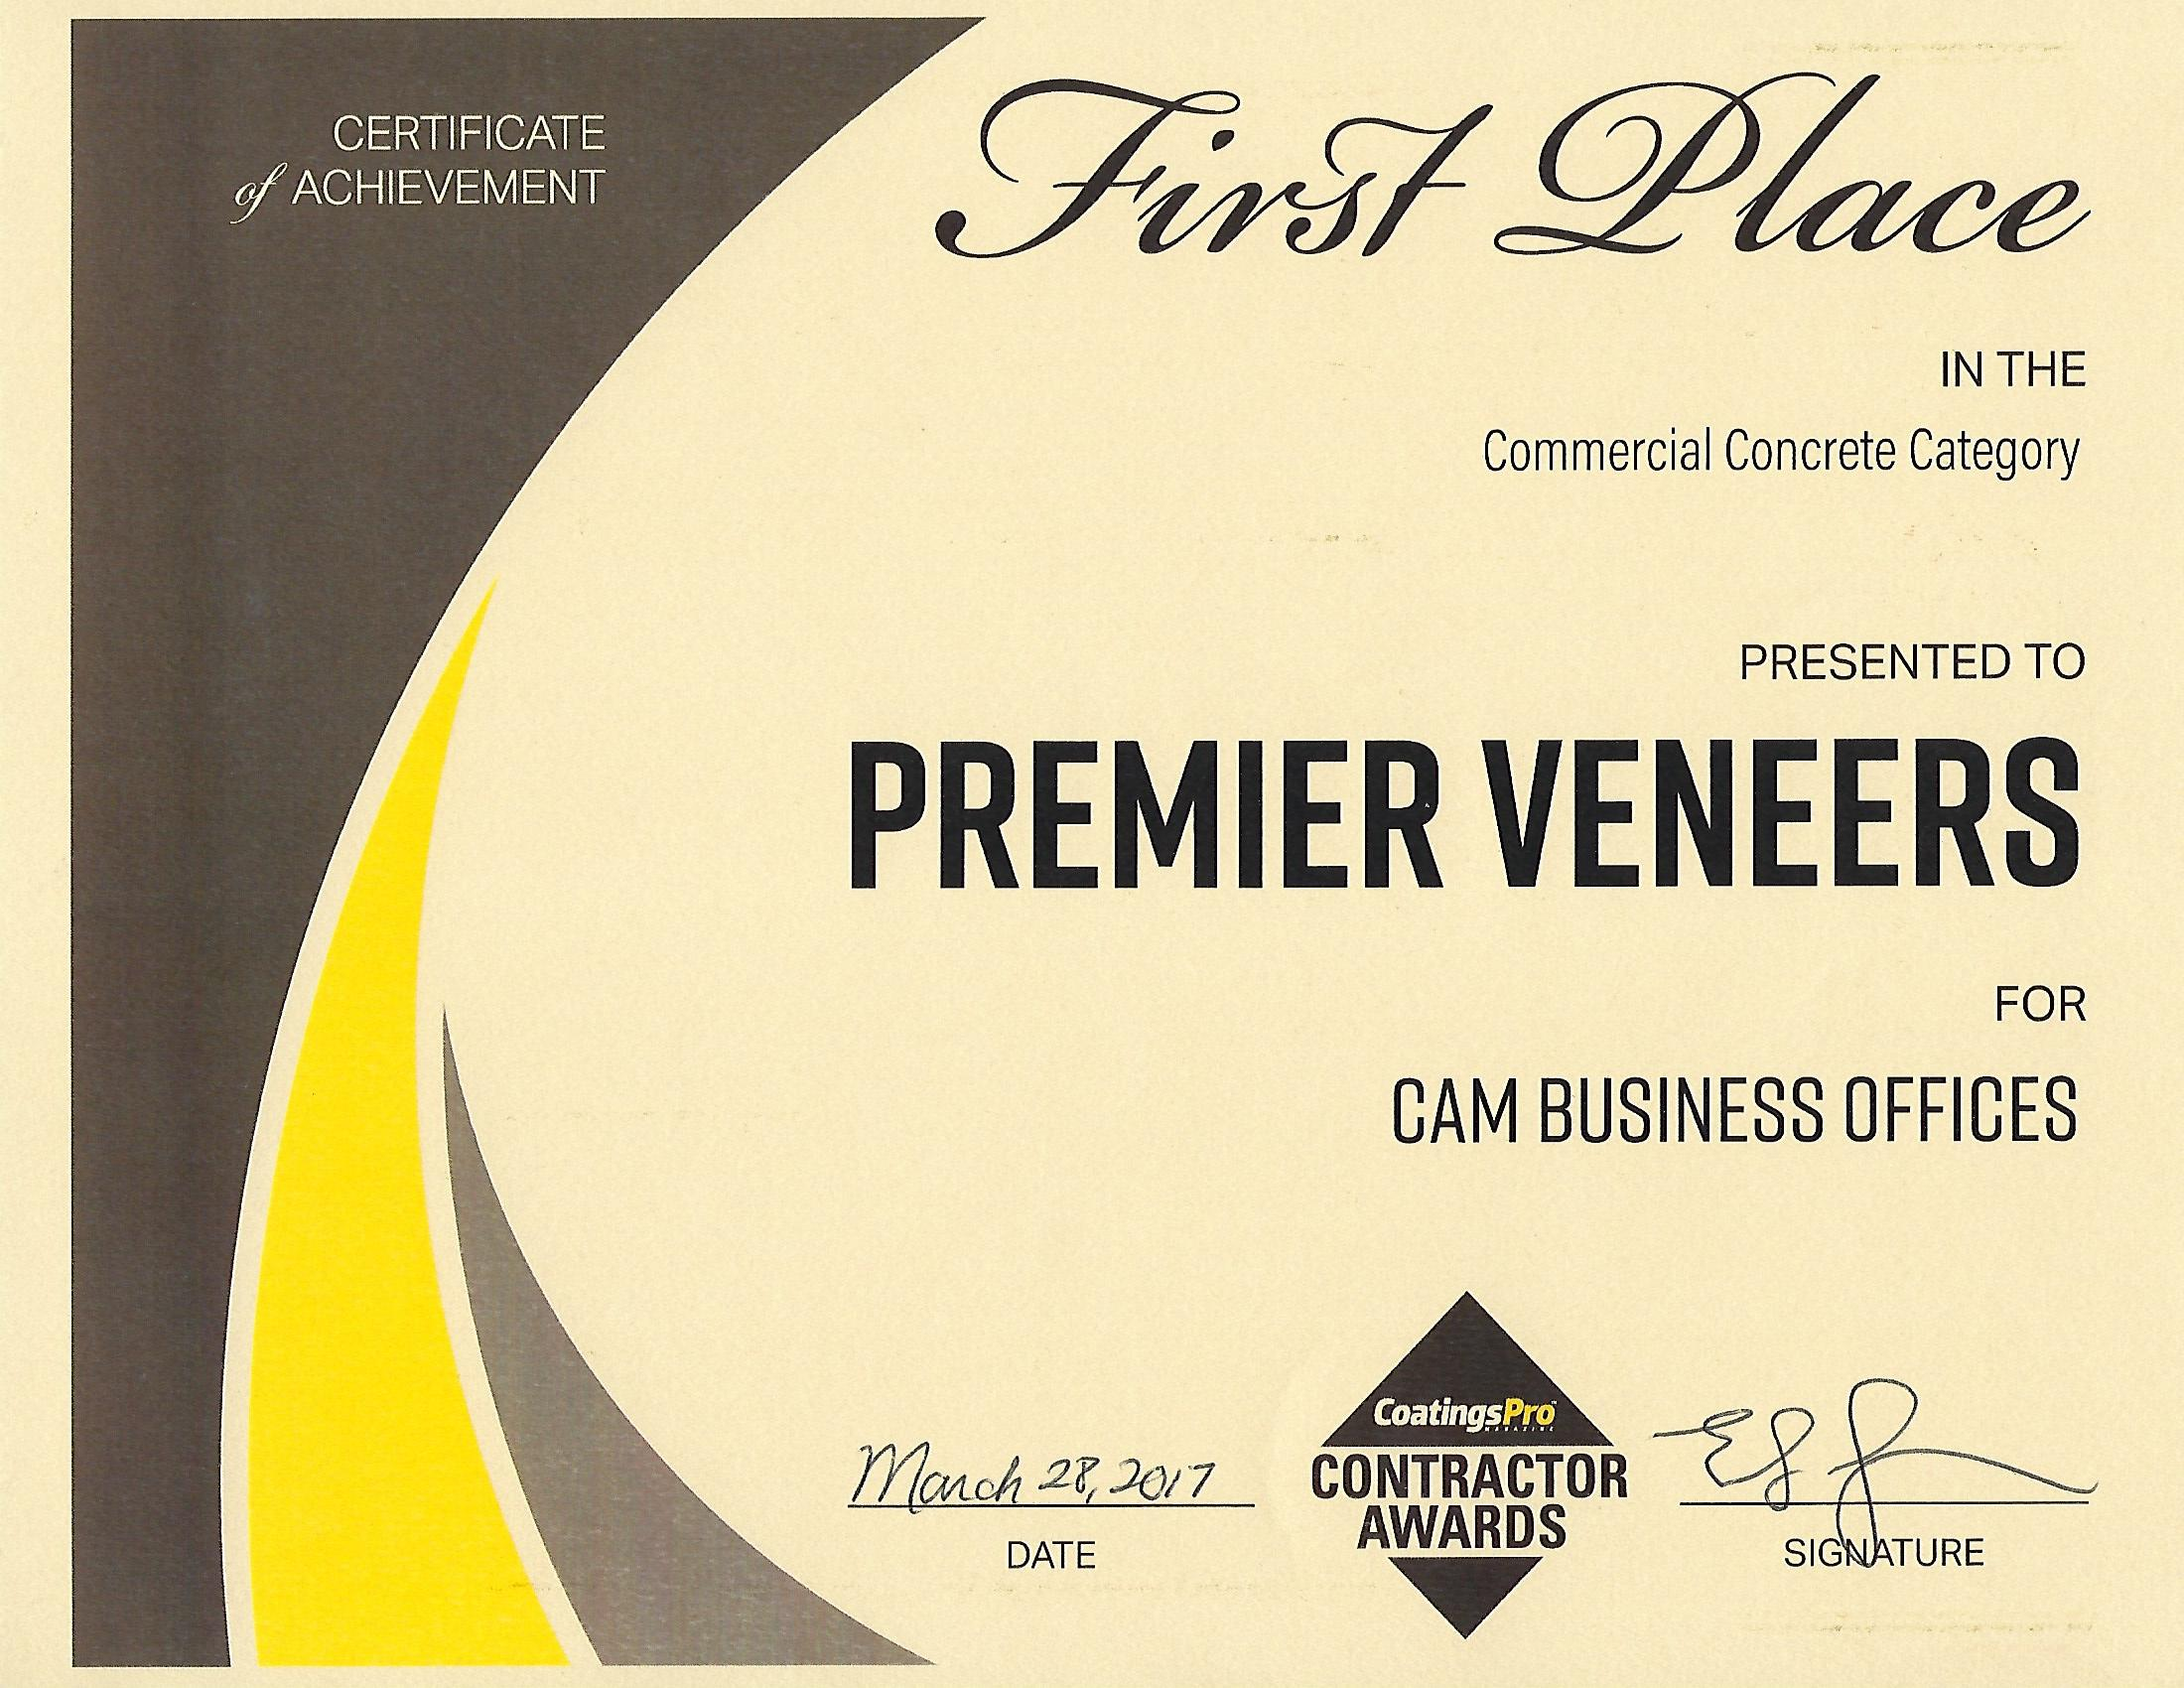 2017 Contractor Awards Program First Place Certificate From CoatingsPro Magazine